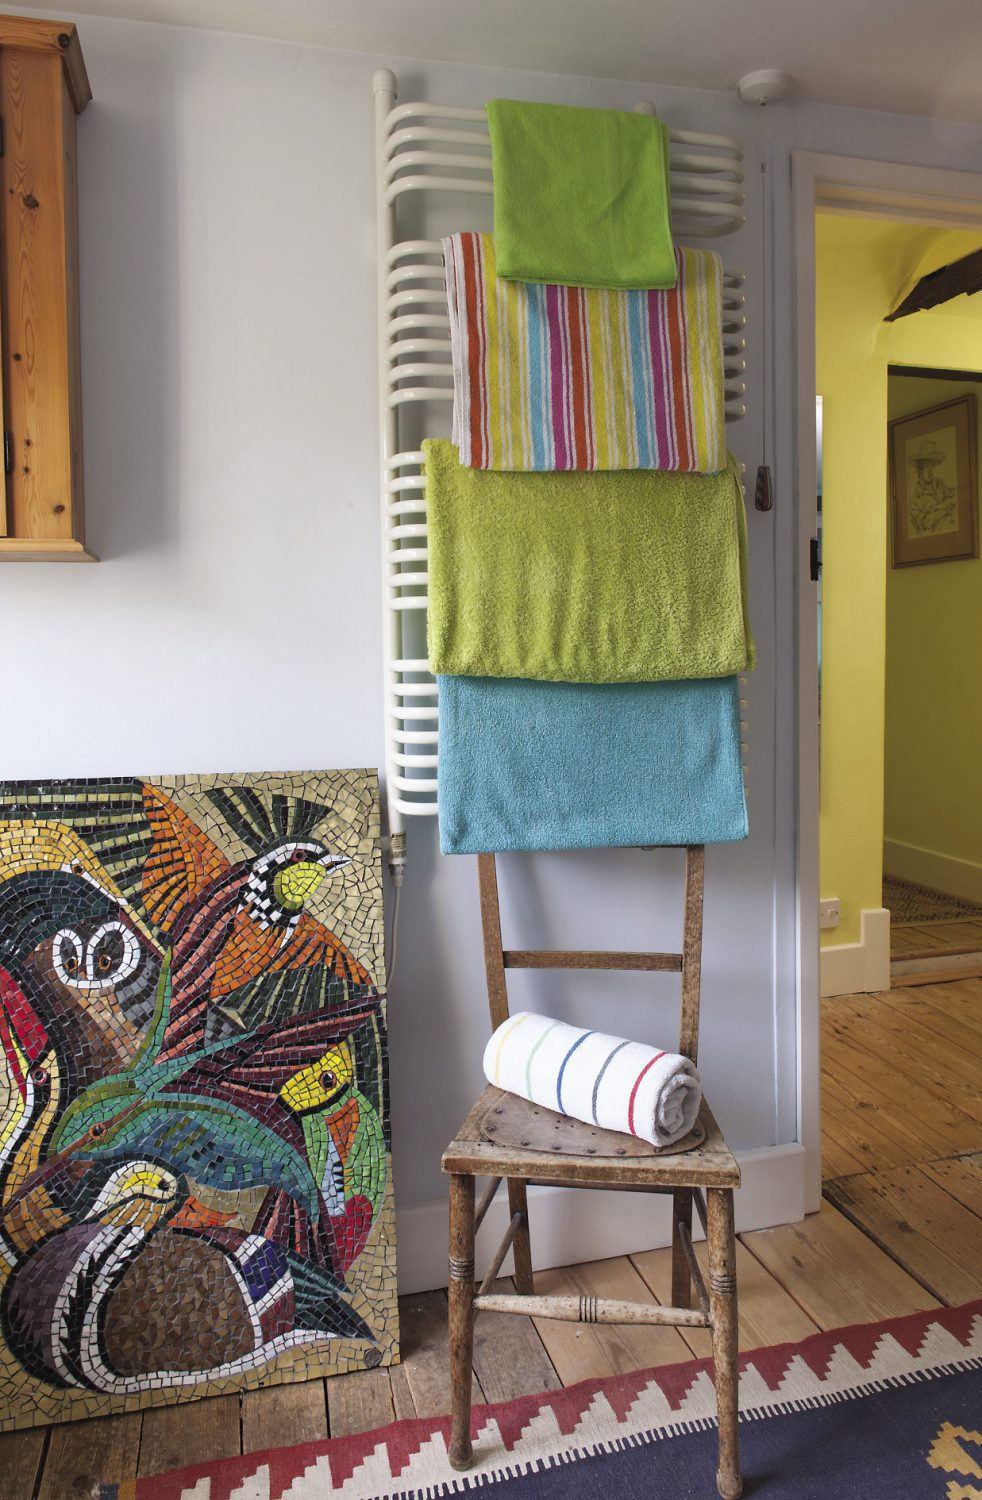 """Fiona teaches textile design so she has a great eye for colour, pattern and texture but the couple differ when it comes to their colour preferences. """"I really love cooler, watery greens and blues, whereas Oliver loves hot colours, so we argue a bit over those,"""" says Fiona"""